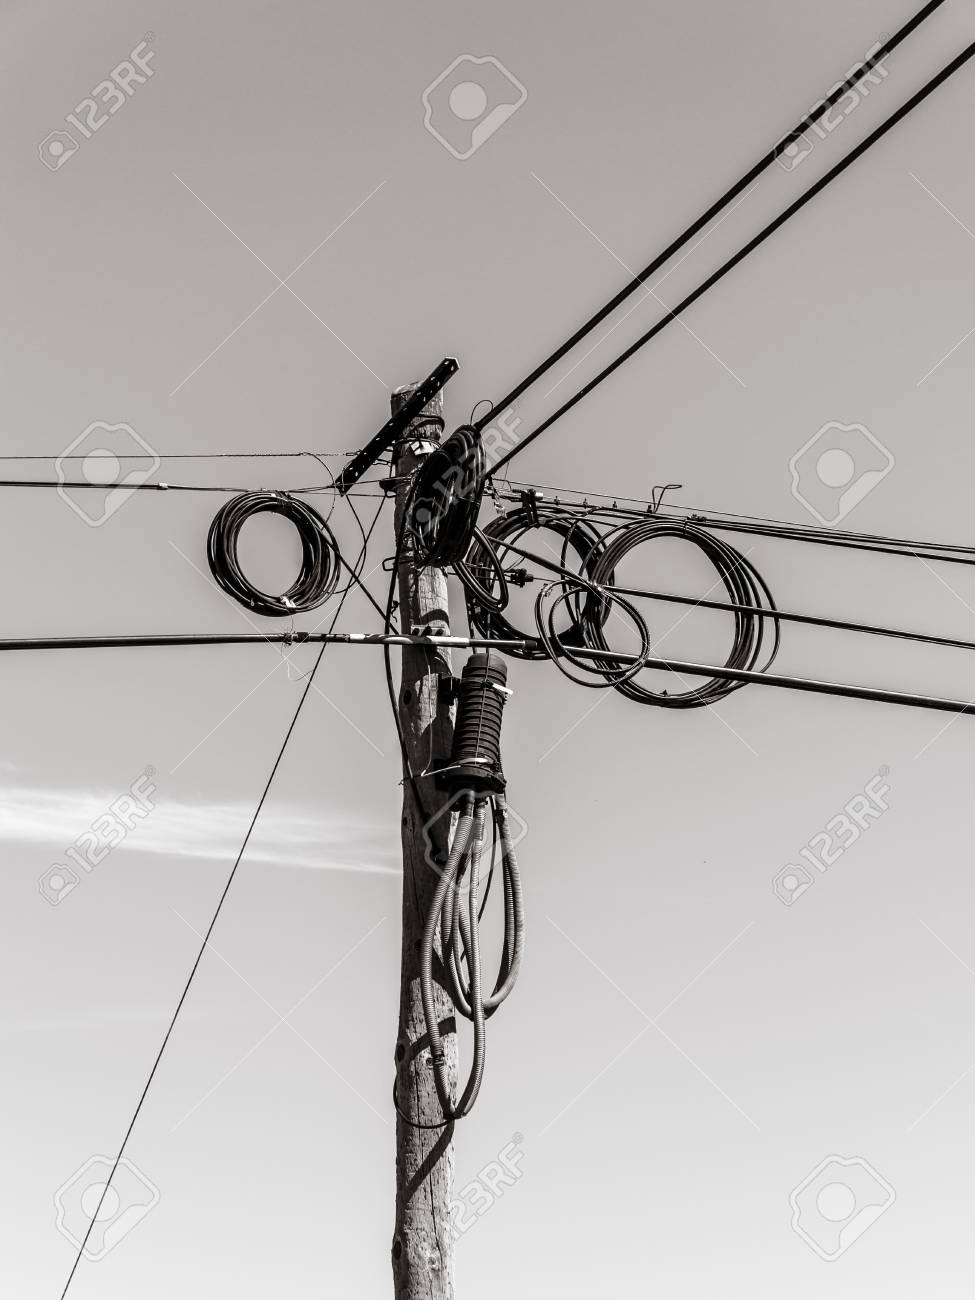 Awesome Wires Internet Sketch - Best Images for wiring diagram ...